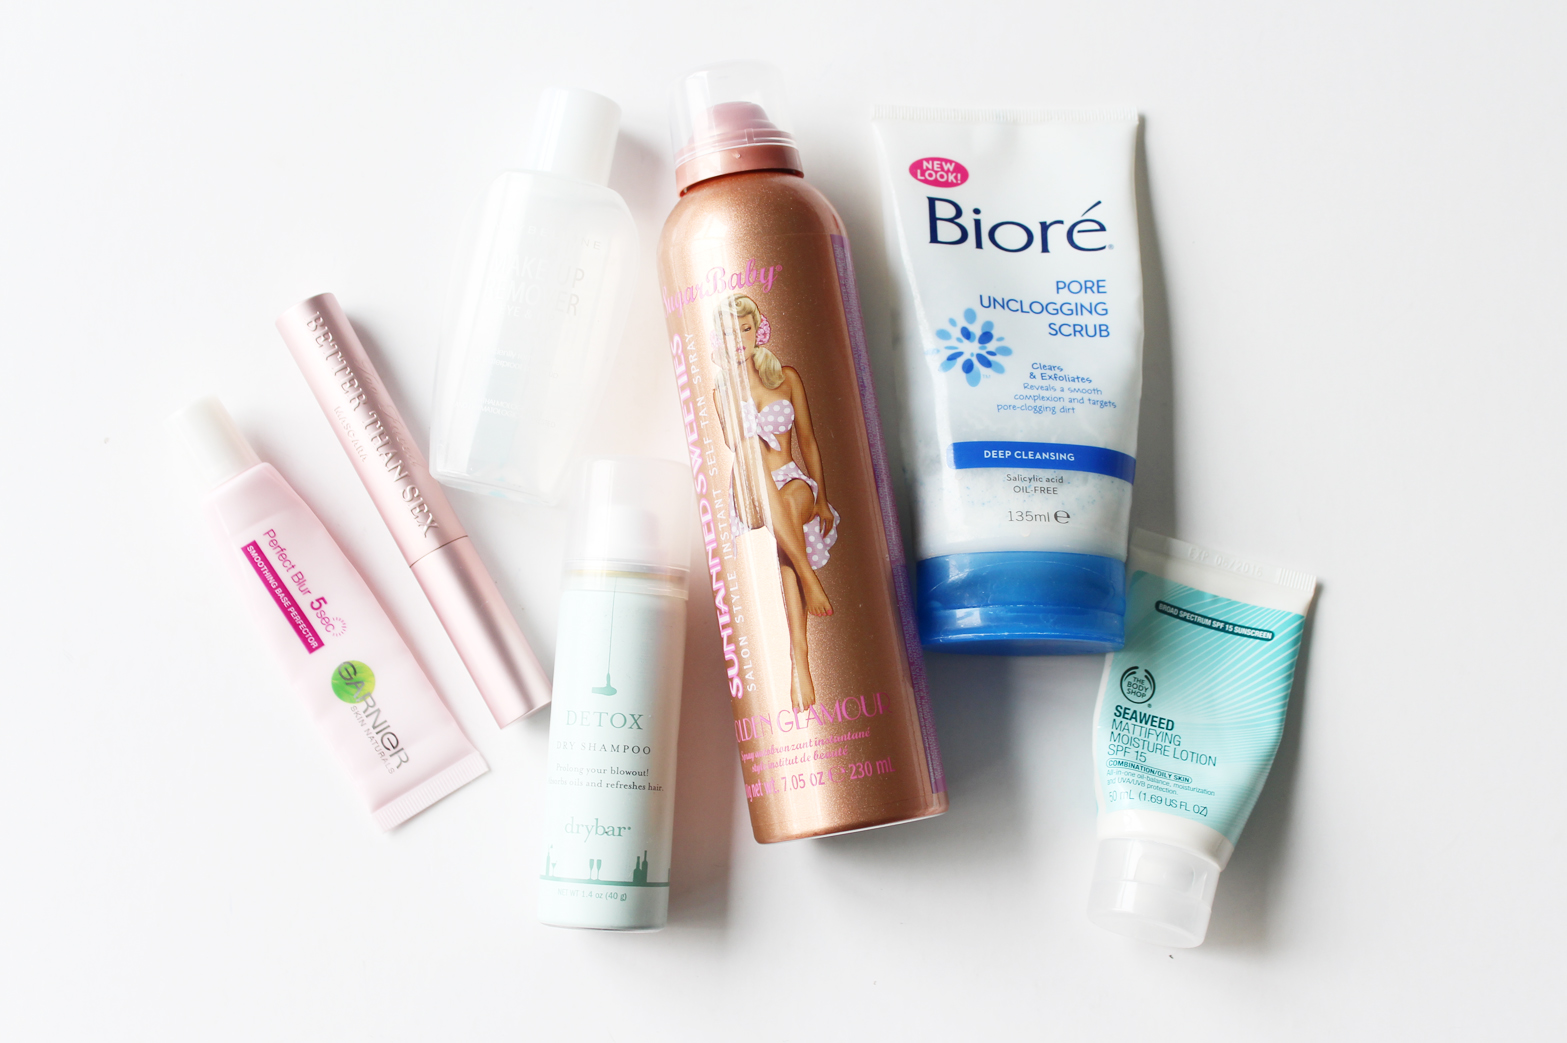 EMPTIES | April '15 - Too Faced, The Body Shop, Garnier, Sugarbaby, Biore, Anatomicals, Makeup Revolution + More - CassandraMyee